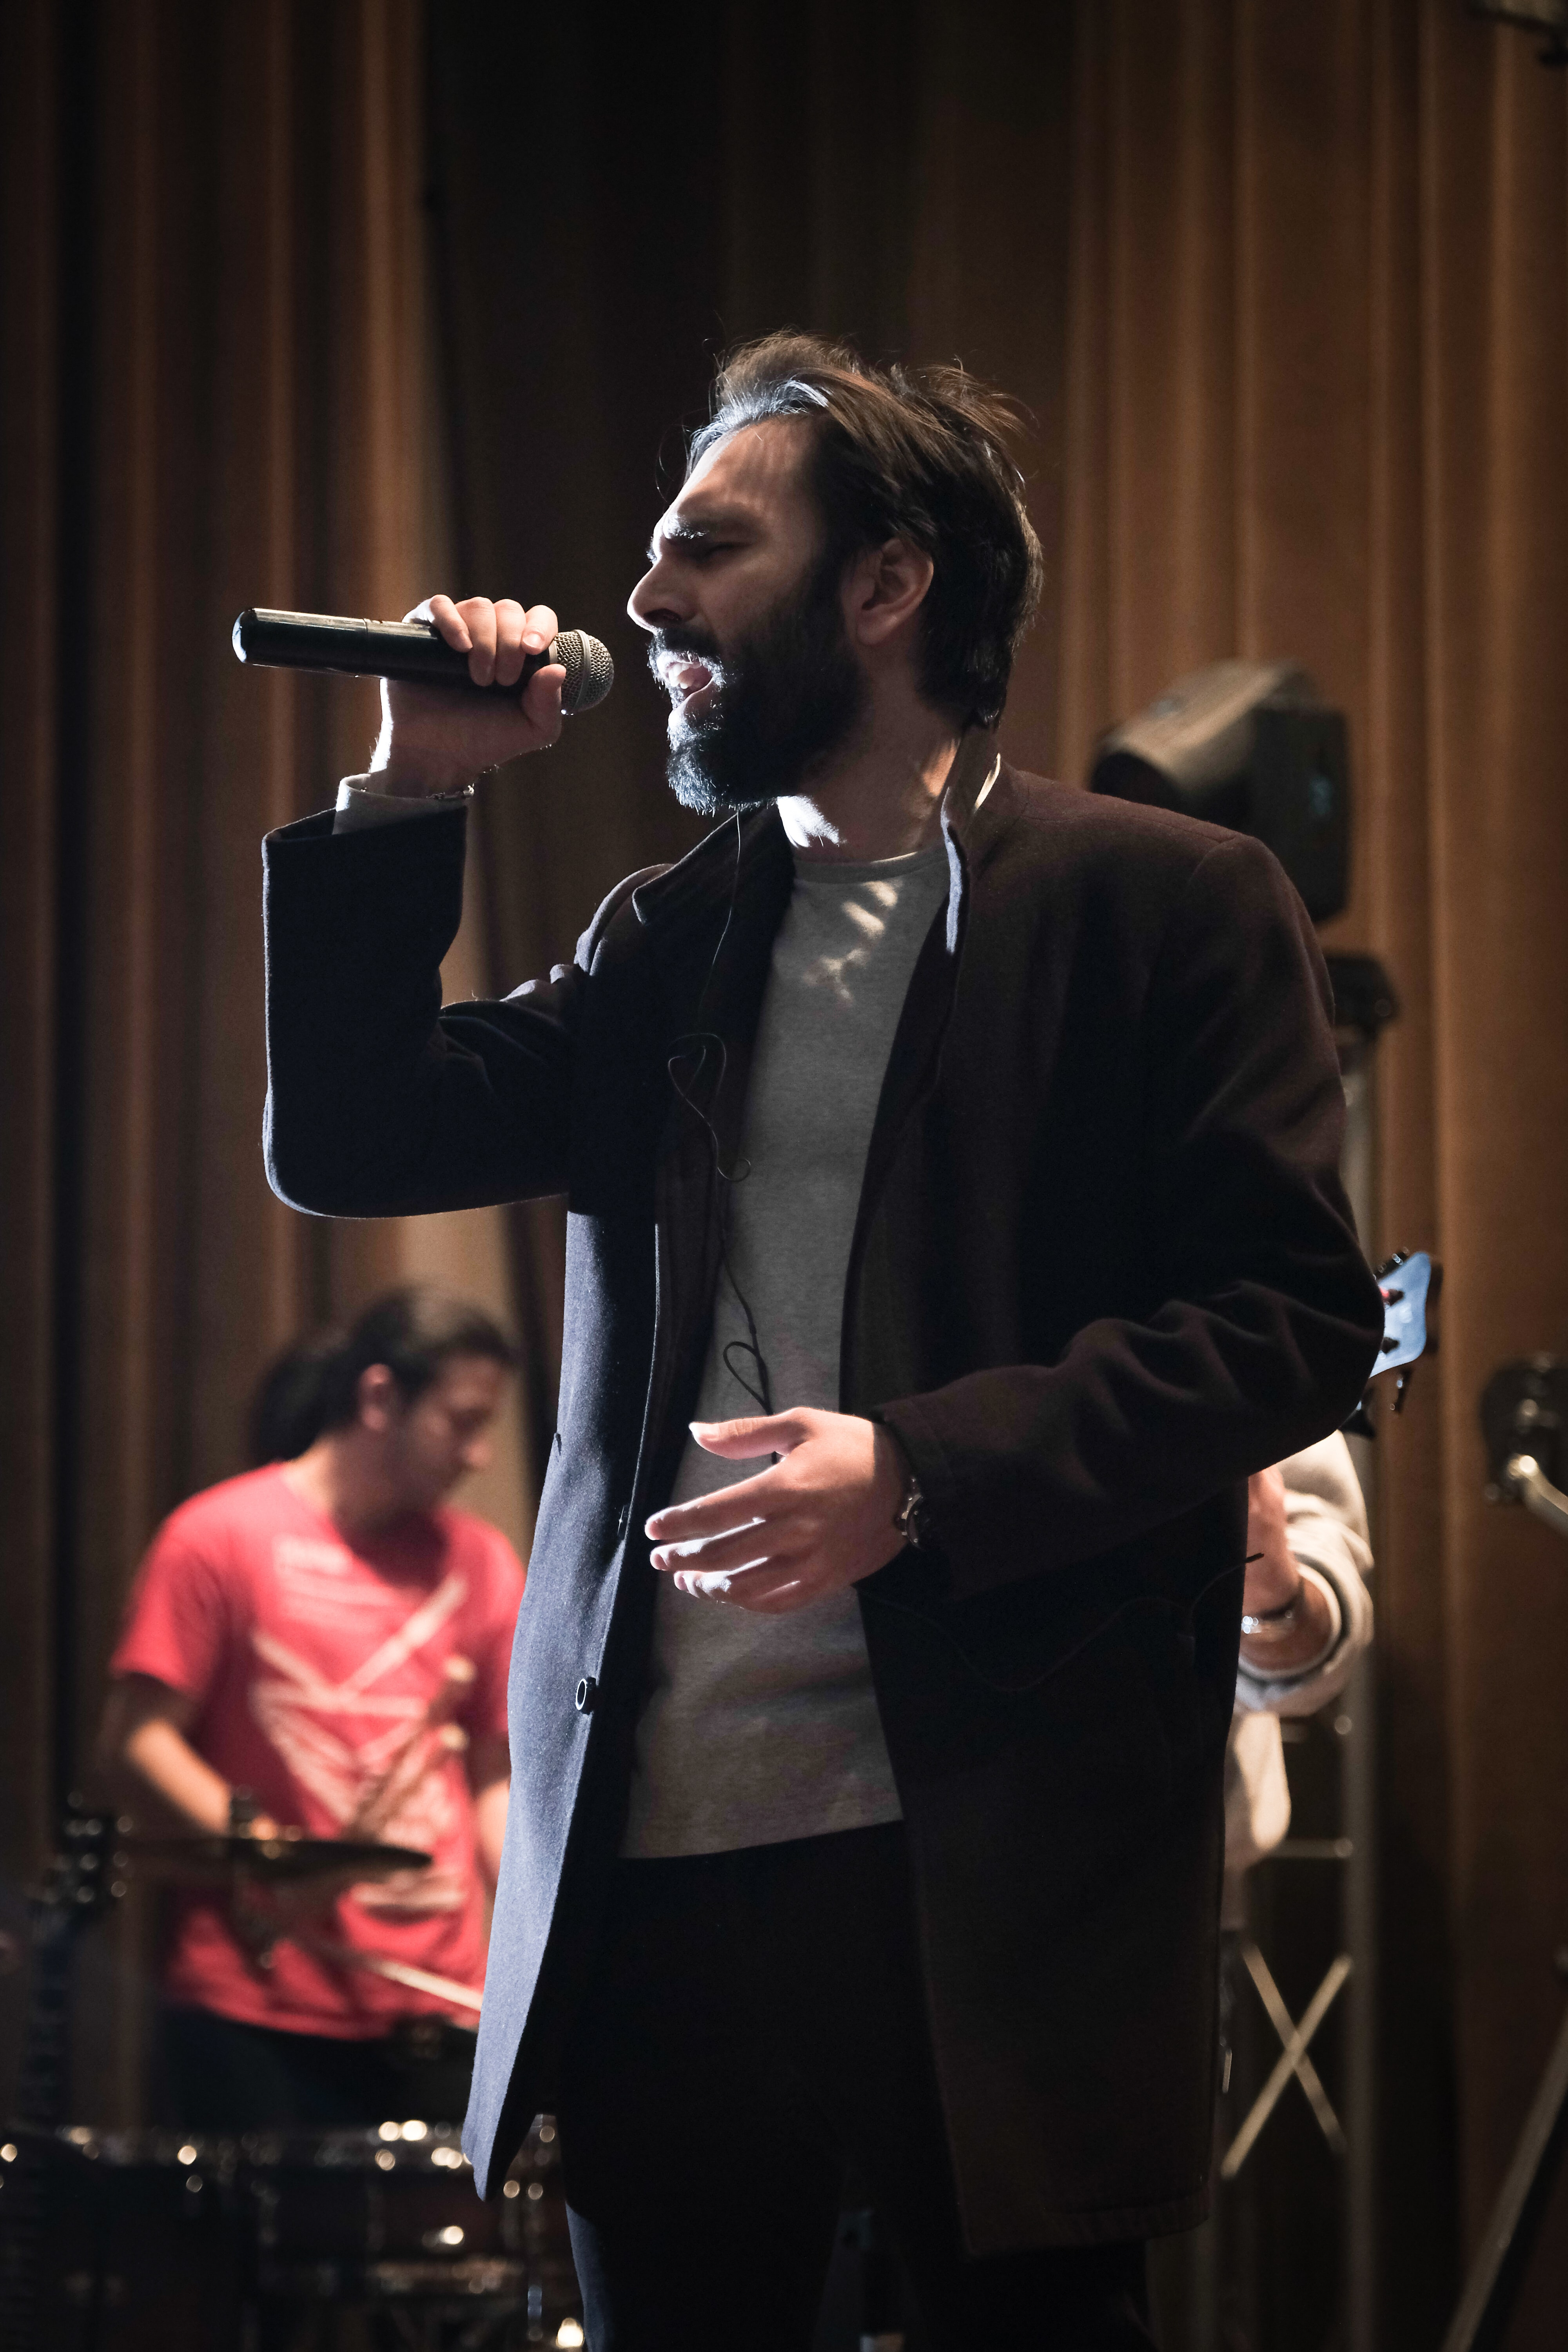 man singing while holding microphone